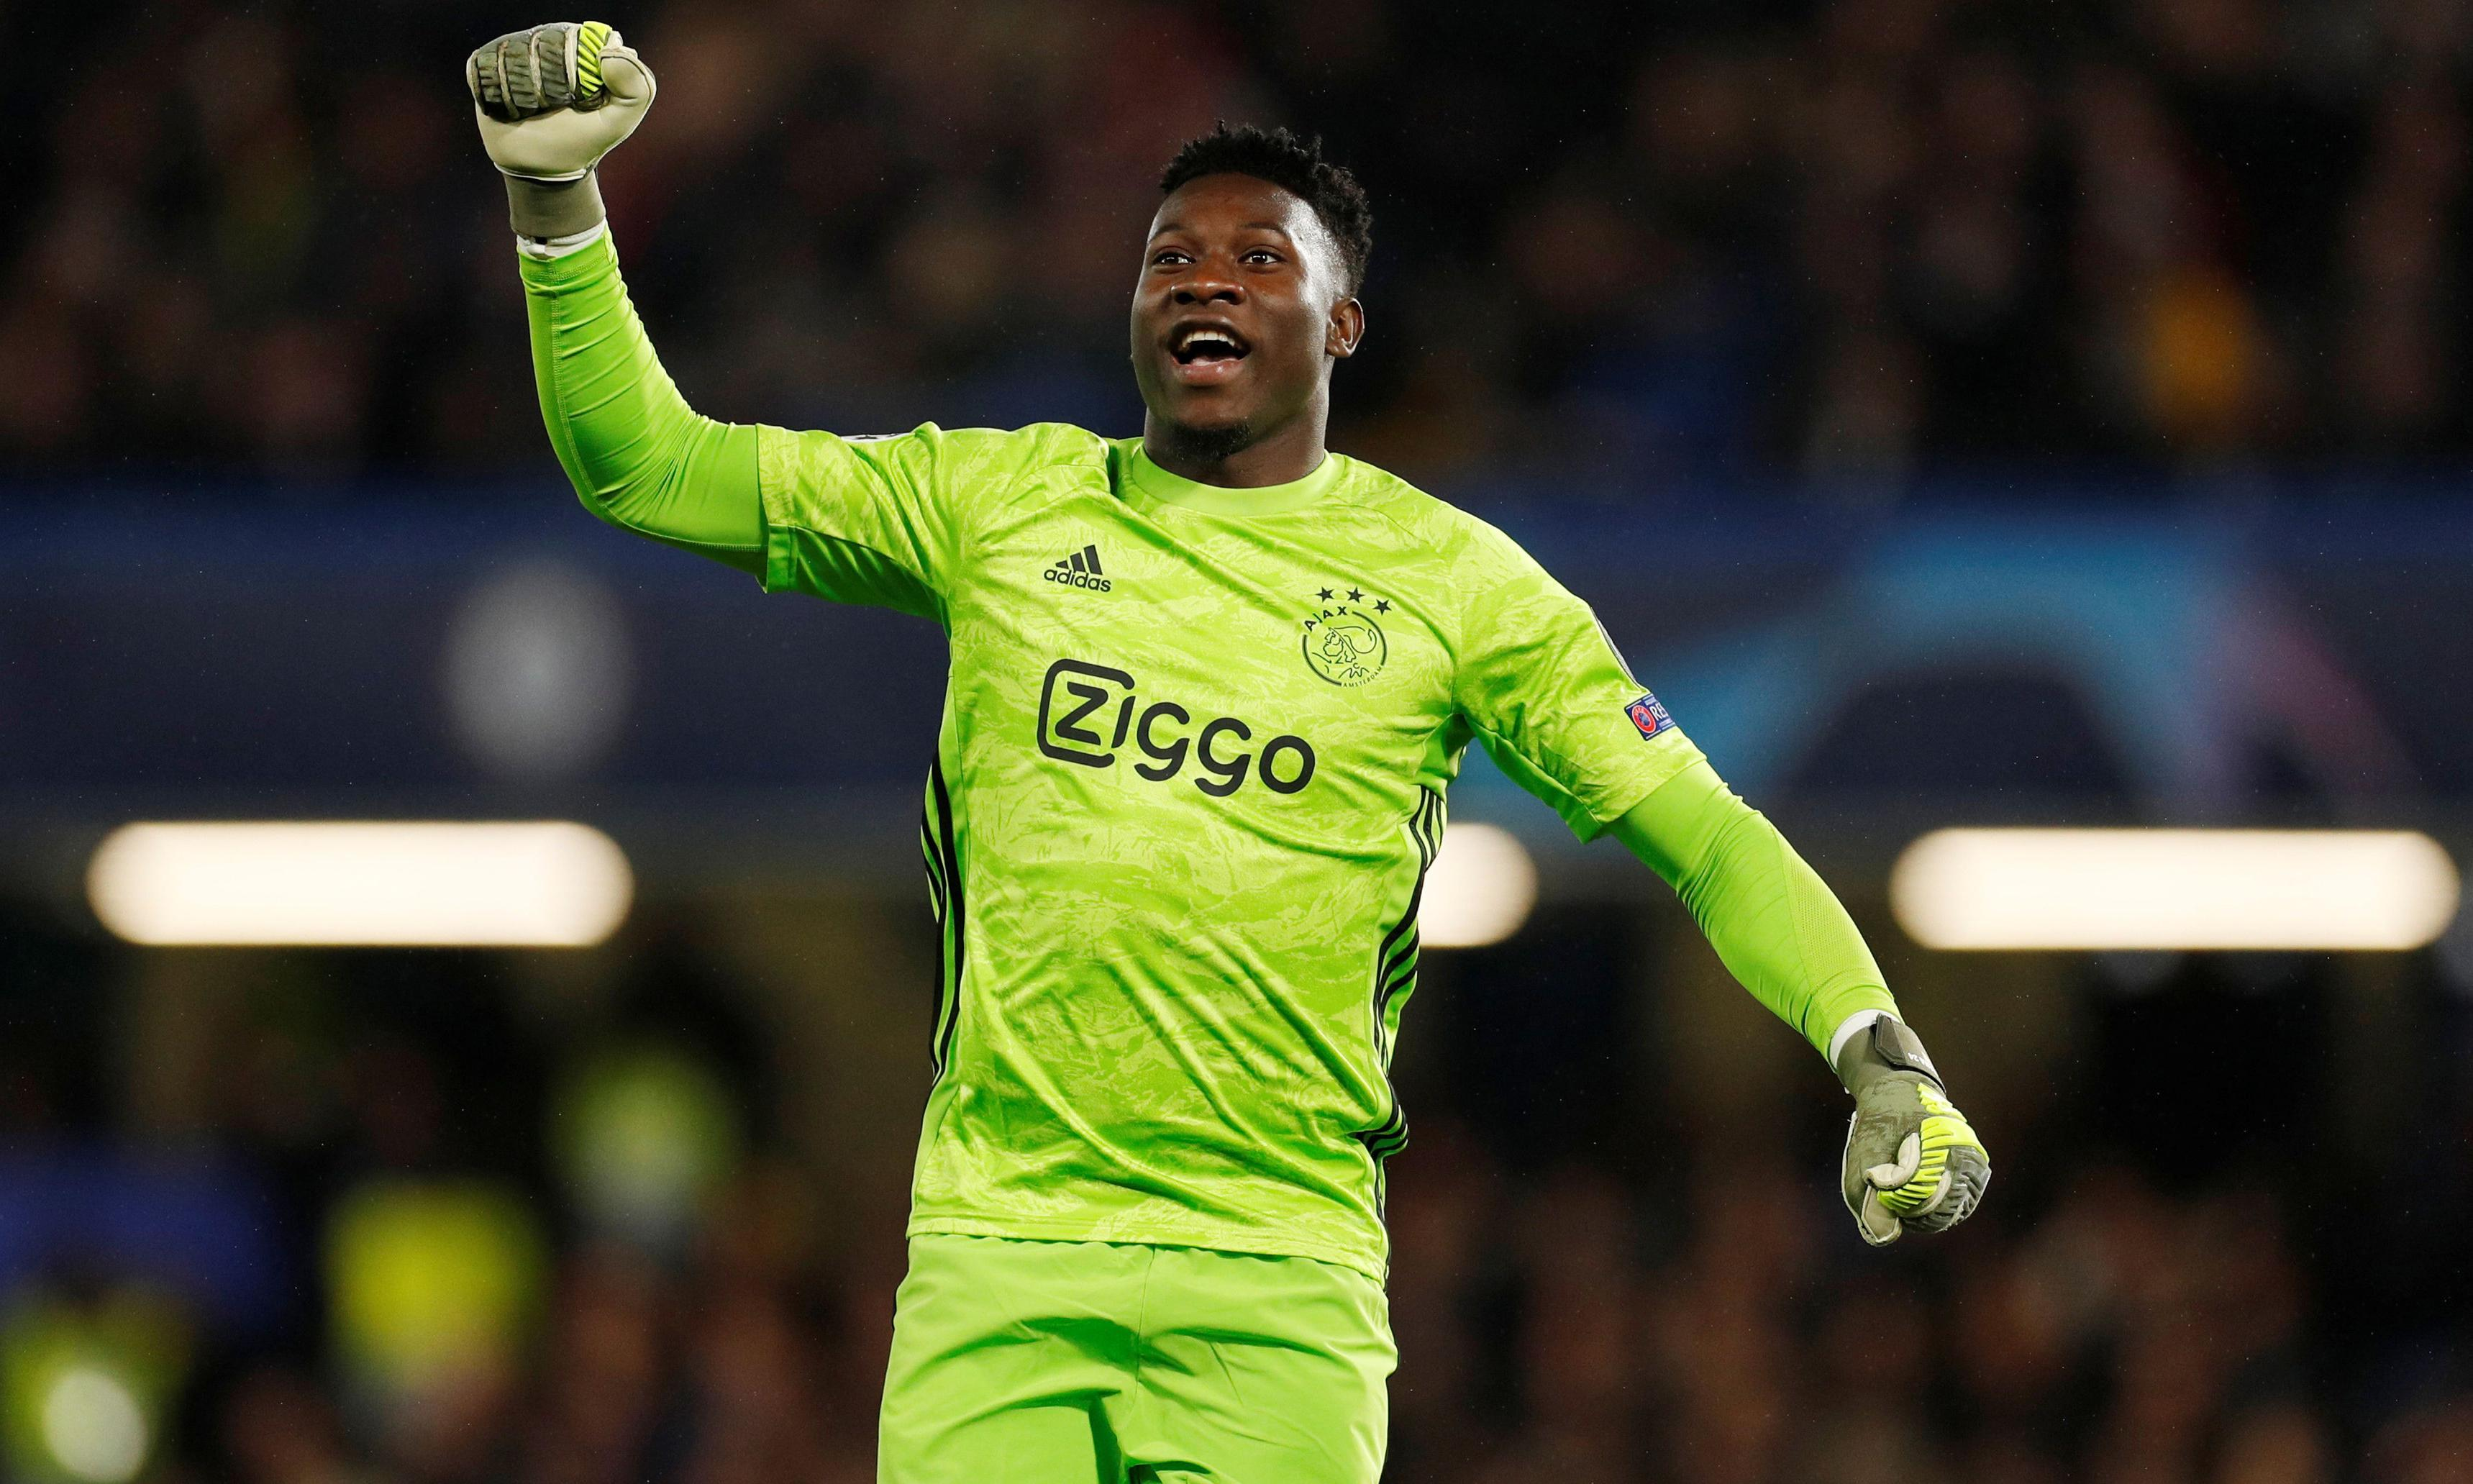 Football transfer rumours: André Onana to Manchester United?